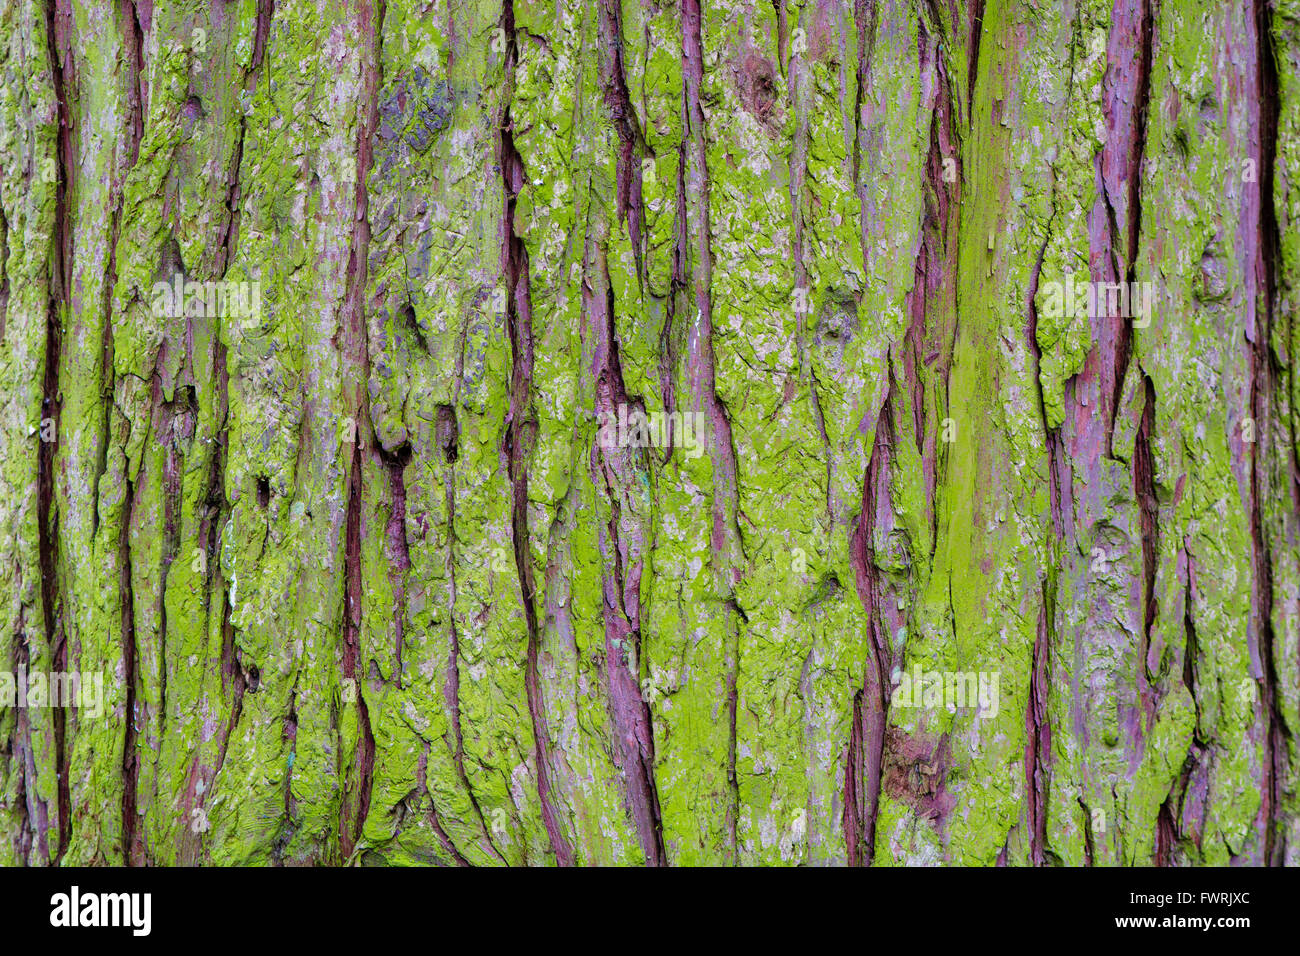 Algae covered conifer bark background. Roughly textured bark of coniferous tree covered in bright green growth - Stock Image